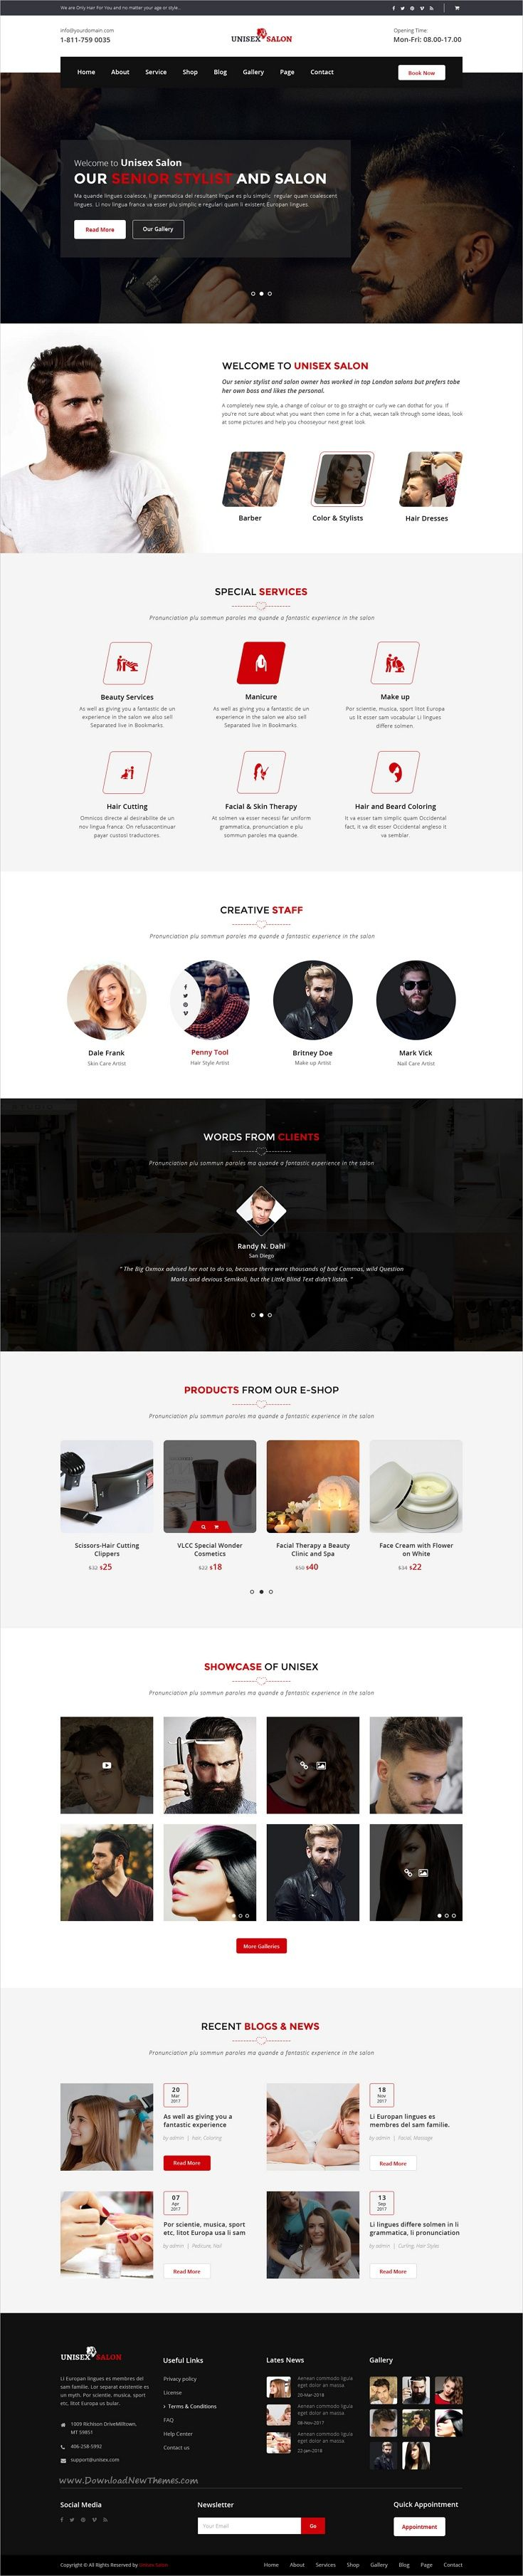 Unisex is clean and modern design #PSD template for #barbershop, #hair spa and beauty #salons website with 3 homepage layouts and 27 layered PSD files download now➩ https://themeforest.net/item/unisex-salon-barber-shop-hair-spa-and-beauty-salon-psd-template/19797130?ref=Datasata